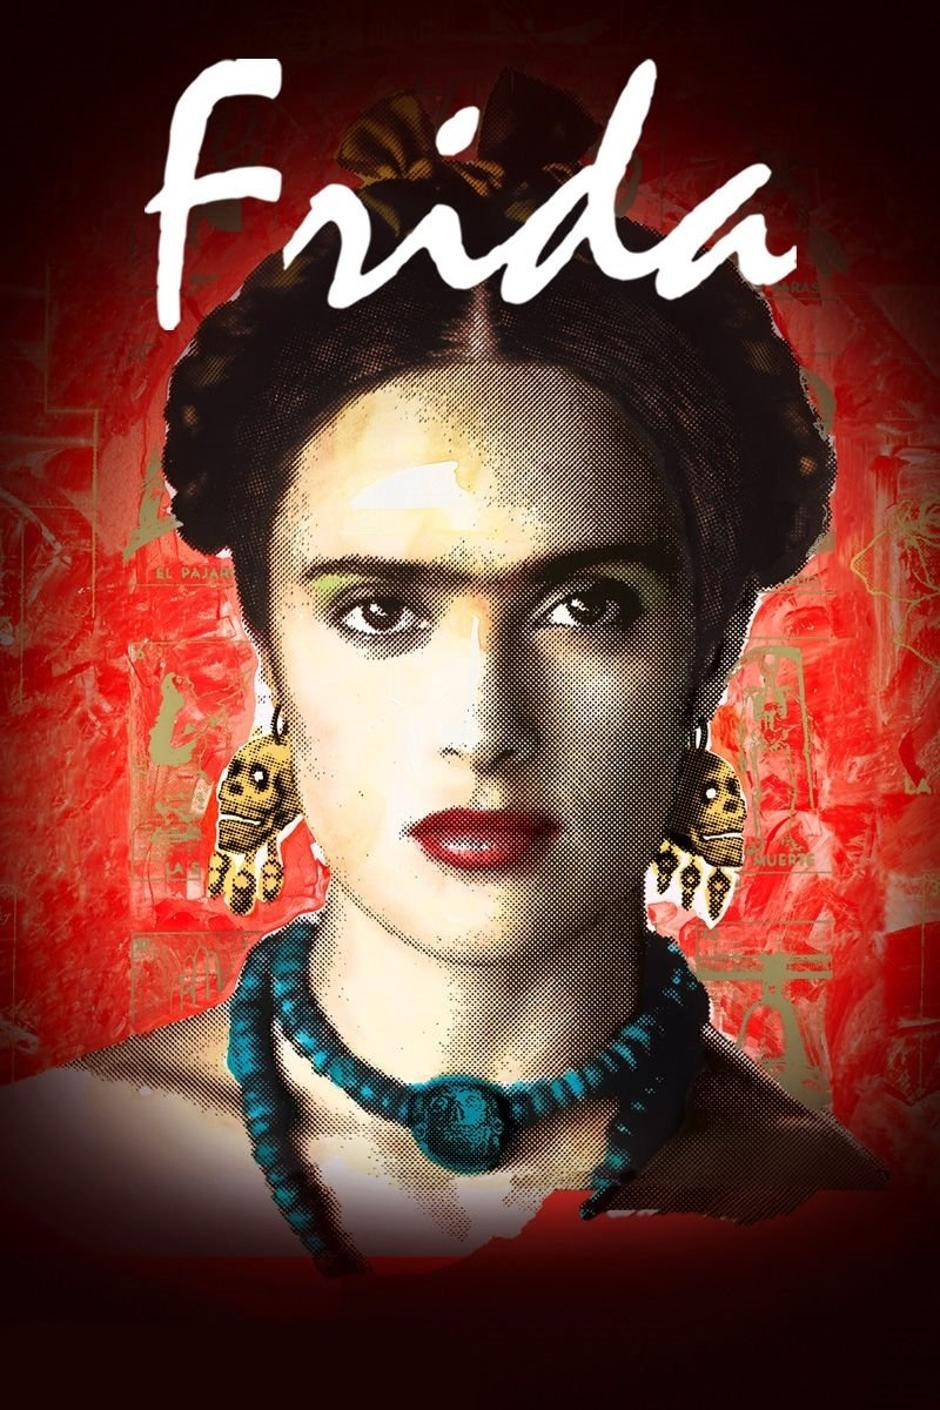 Frida | Author: Tmdb.org